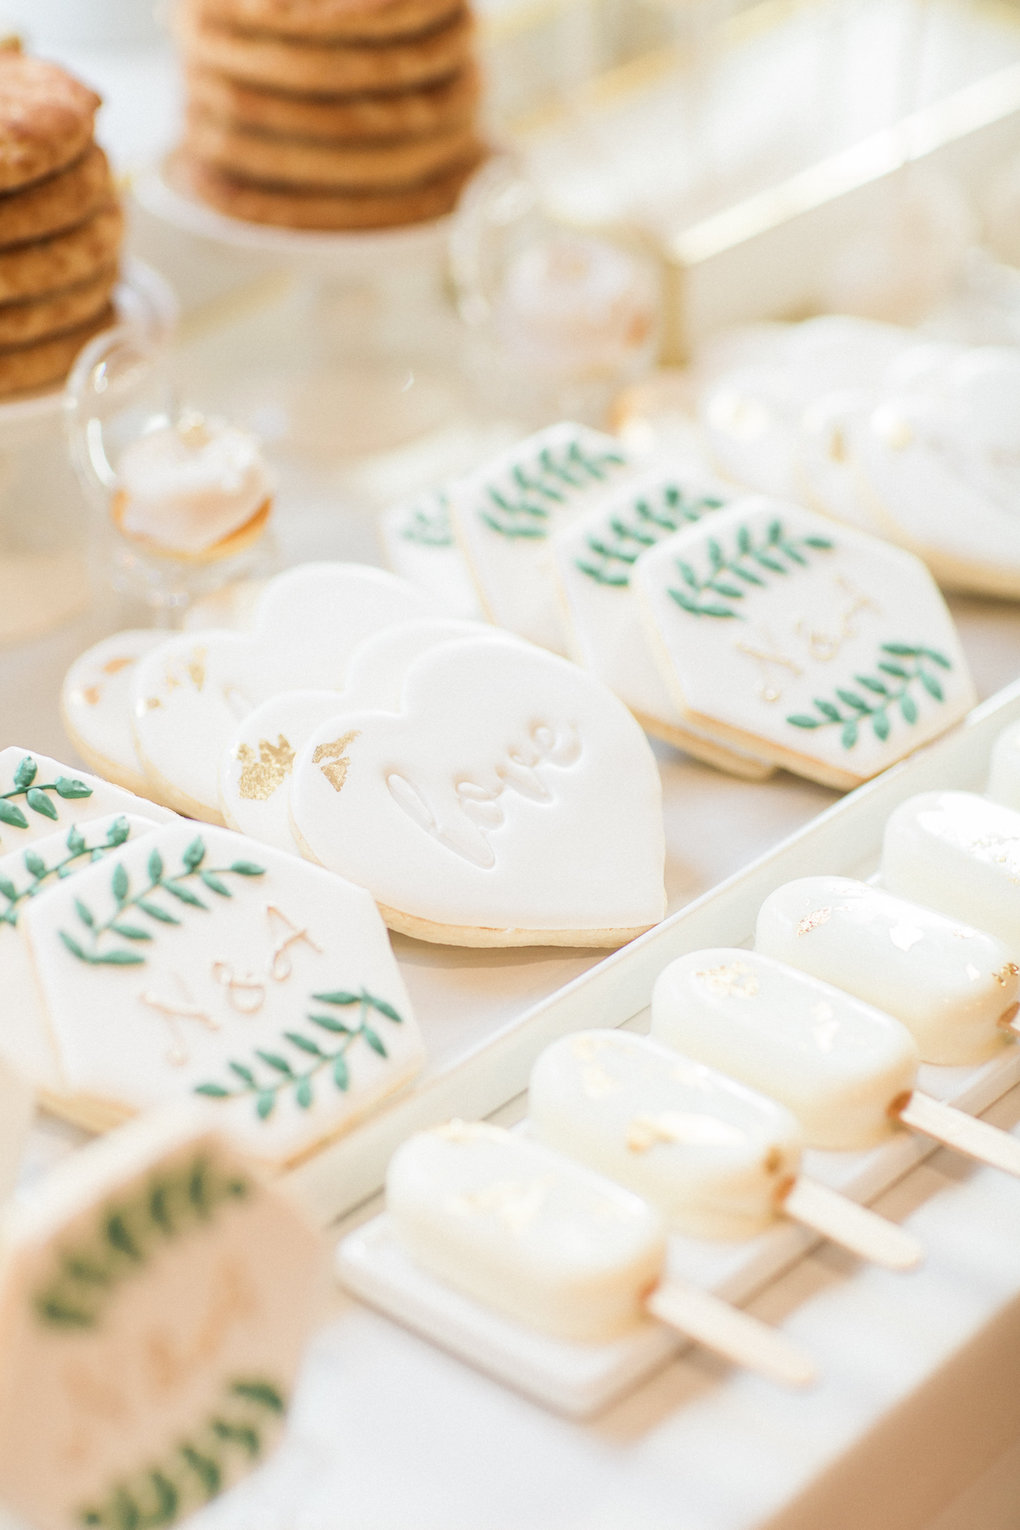 Wedding dessert ideas for chic wedding in Buffalo, NY planned by Exhale Events. Find more timeless wedding inspiration at exhale-events.com!